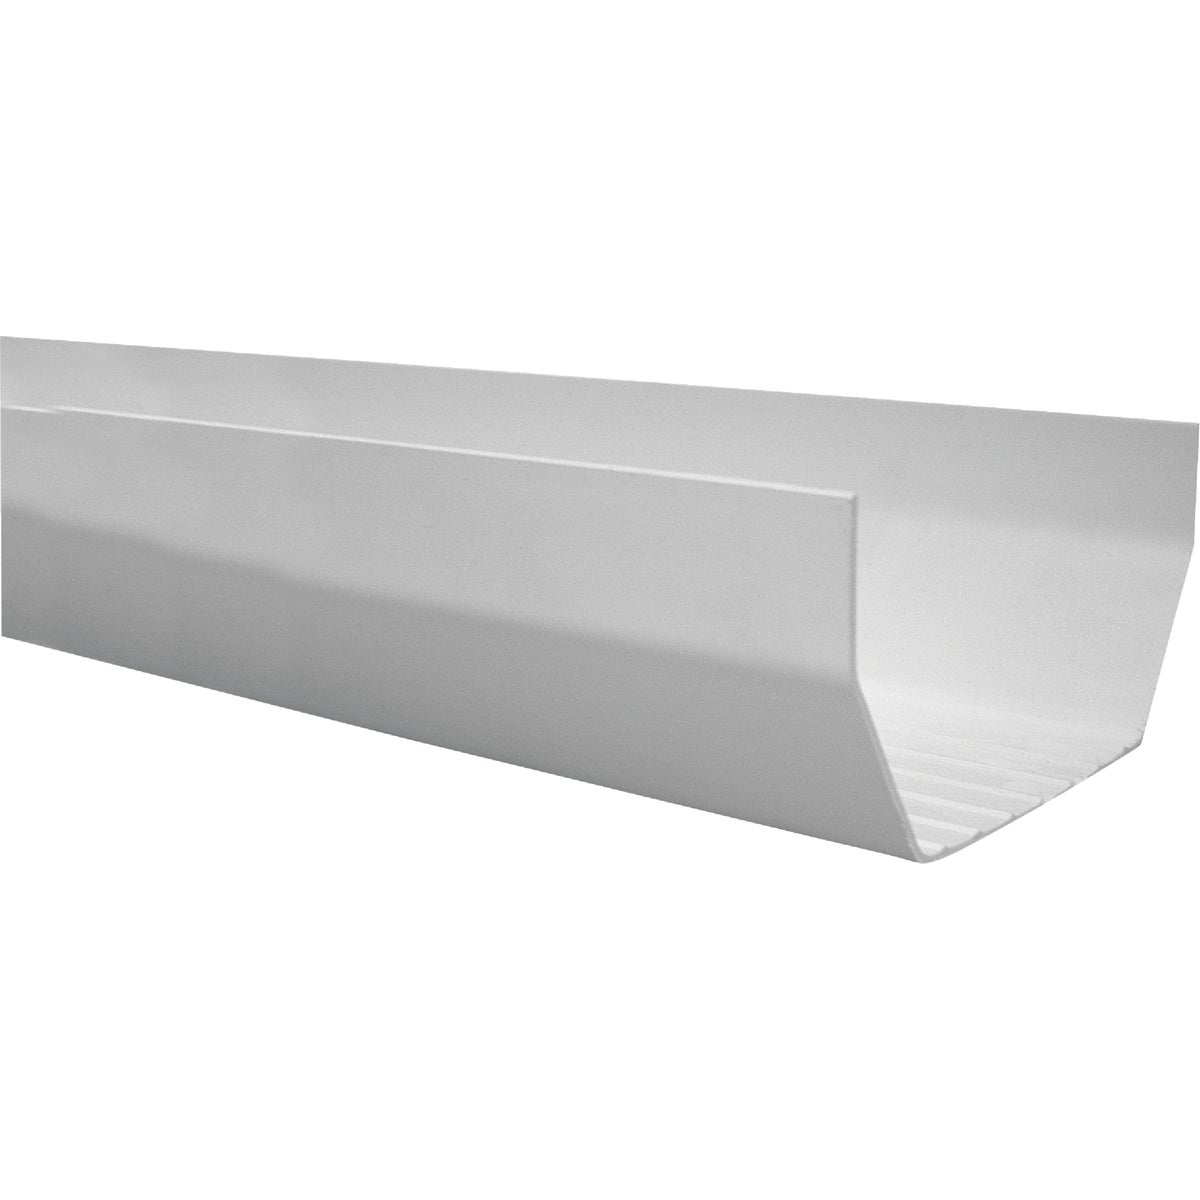 "5"" WHT VINYL GUTTER - RW100 by Genova Products"